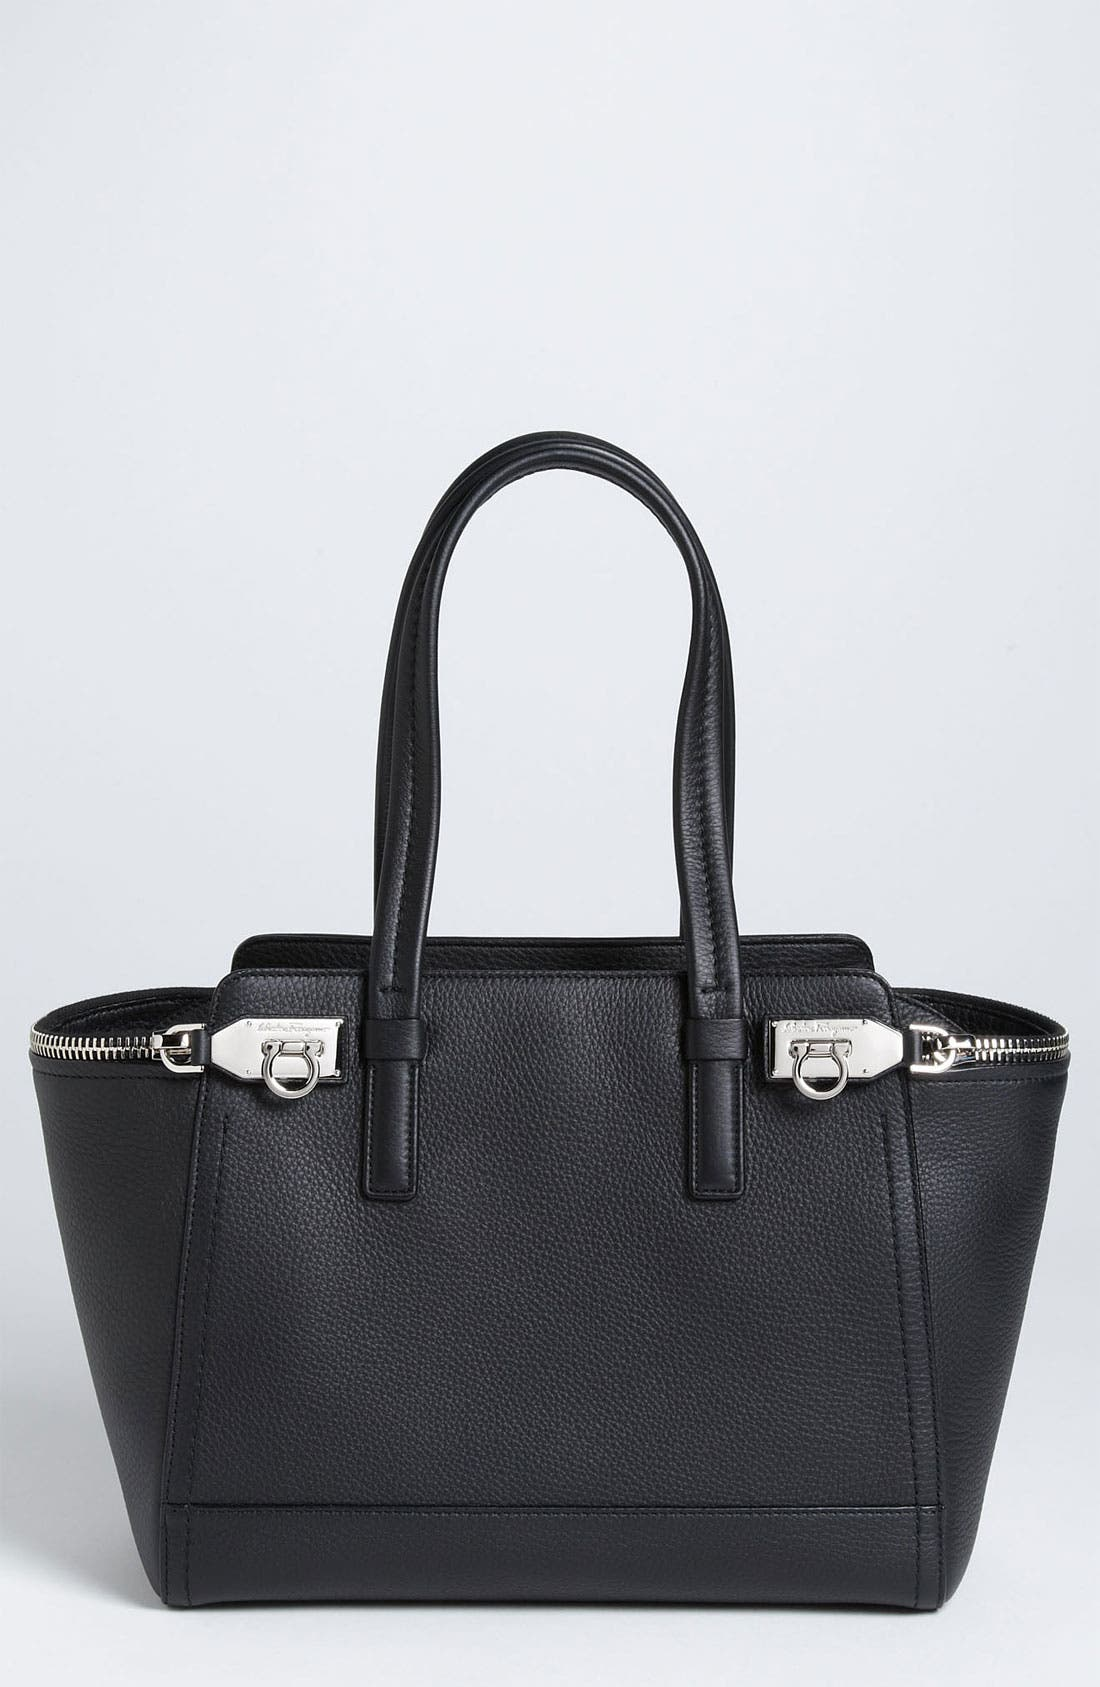 Main Image - Salvatore Ferragamo 'Small Arianna' Leather Satchel